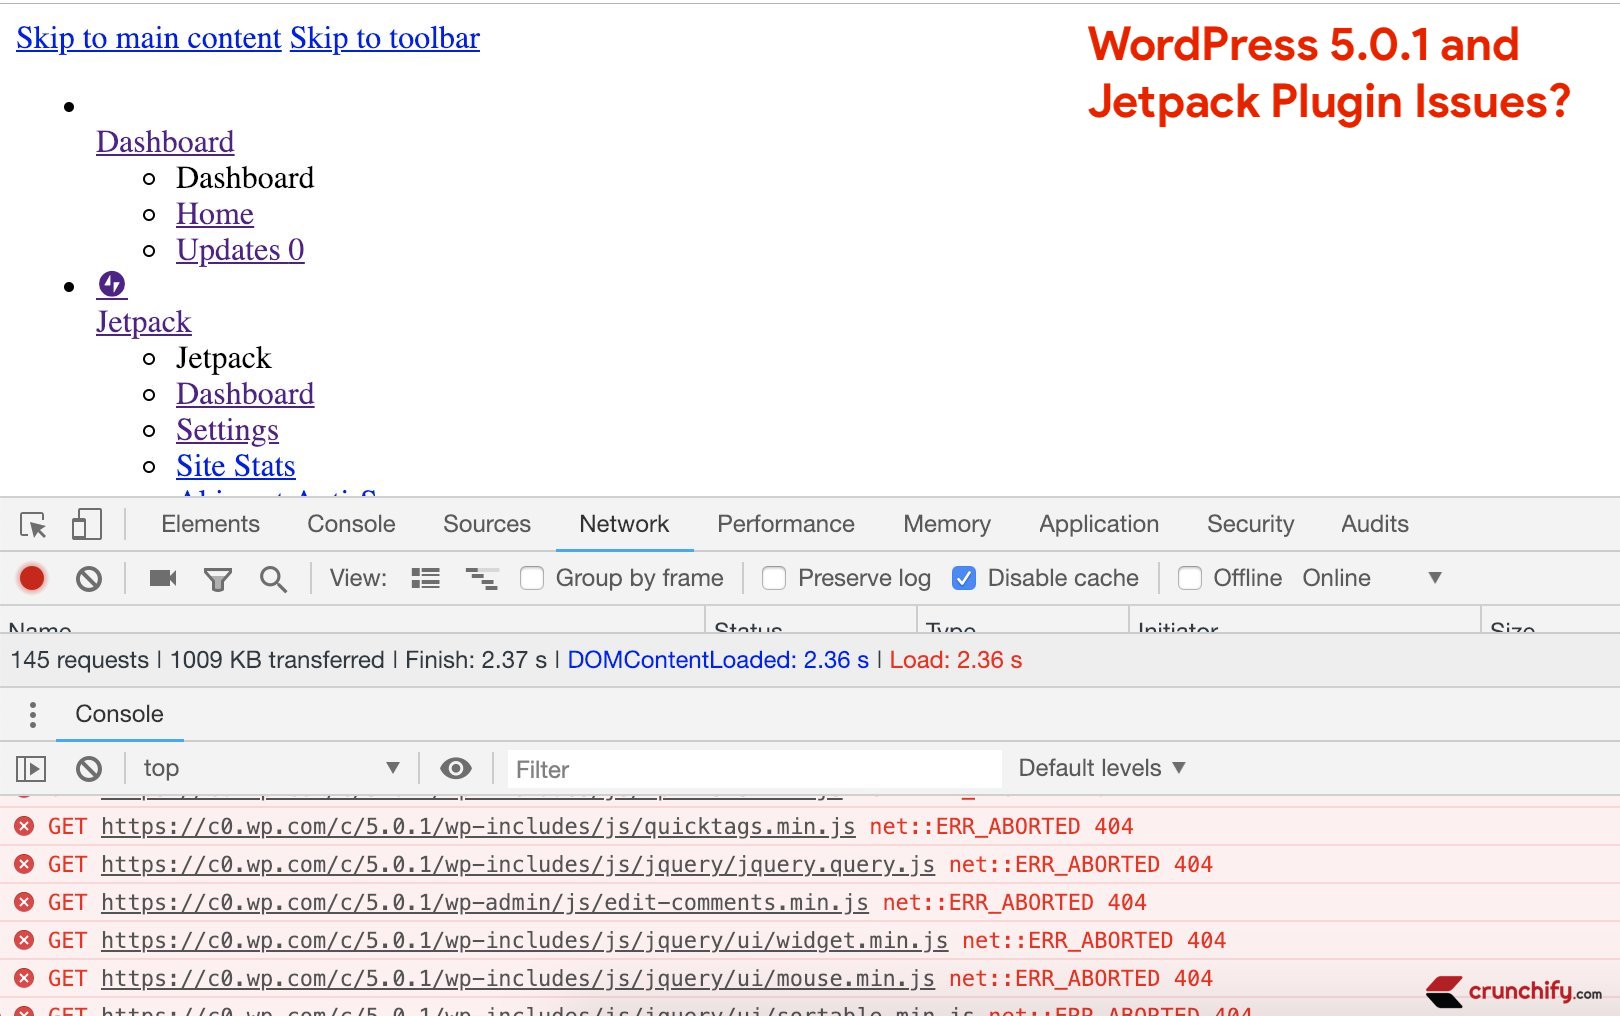 WordPress 5.0.1 and Plugin Issues